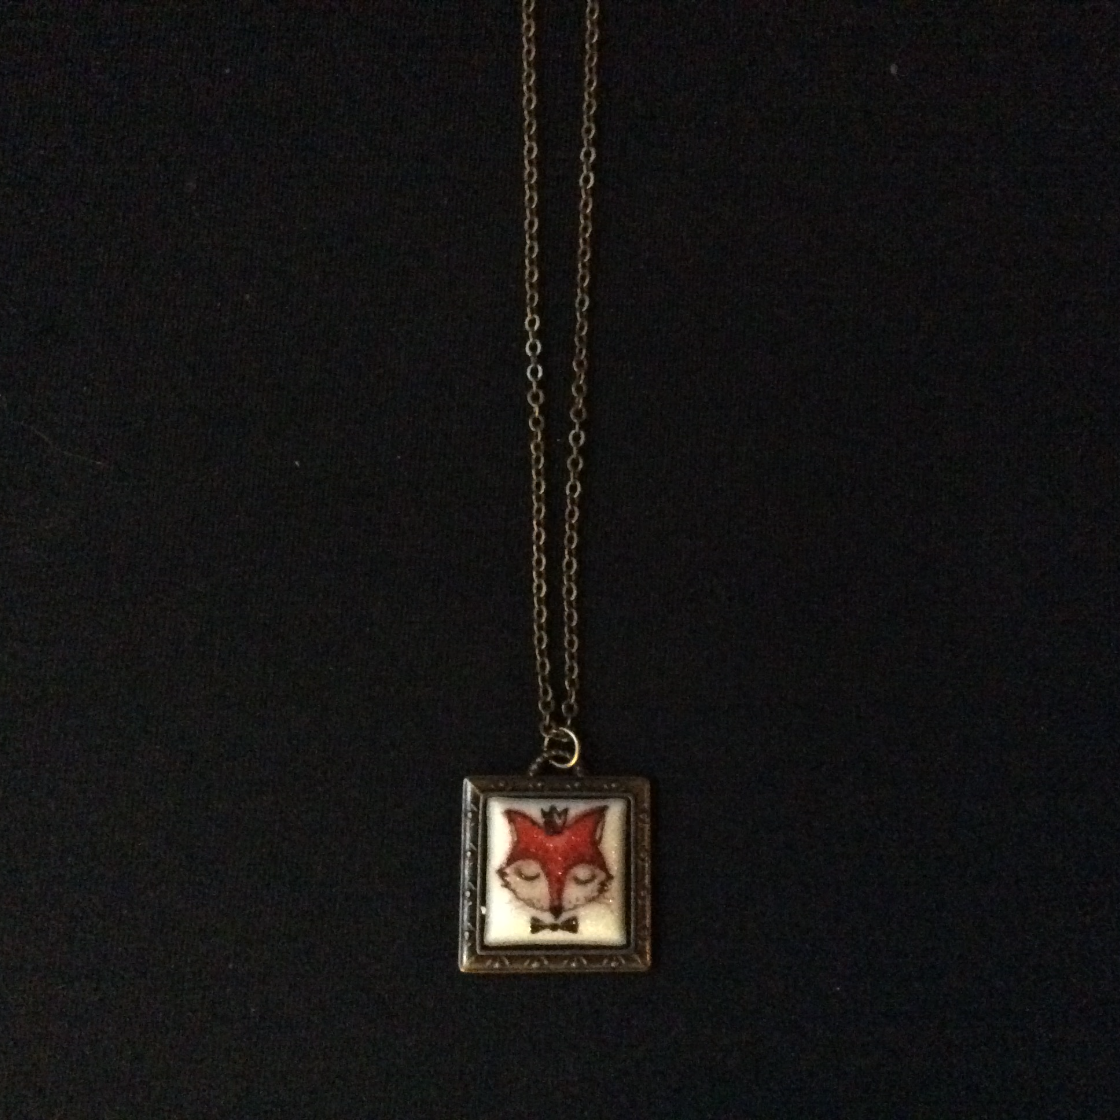 Square Framed Fox Charm Necklace